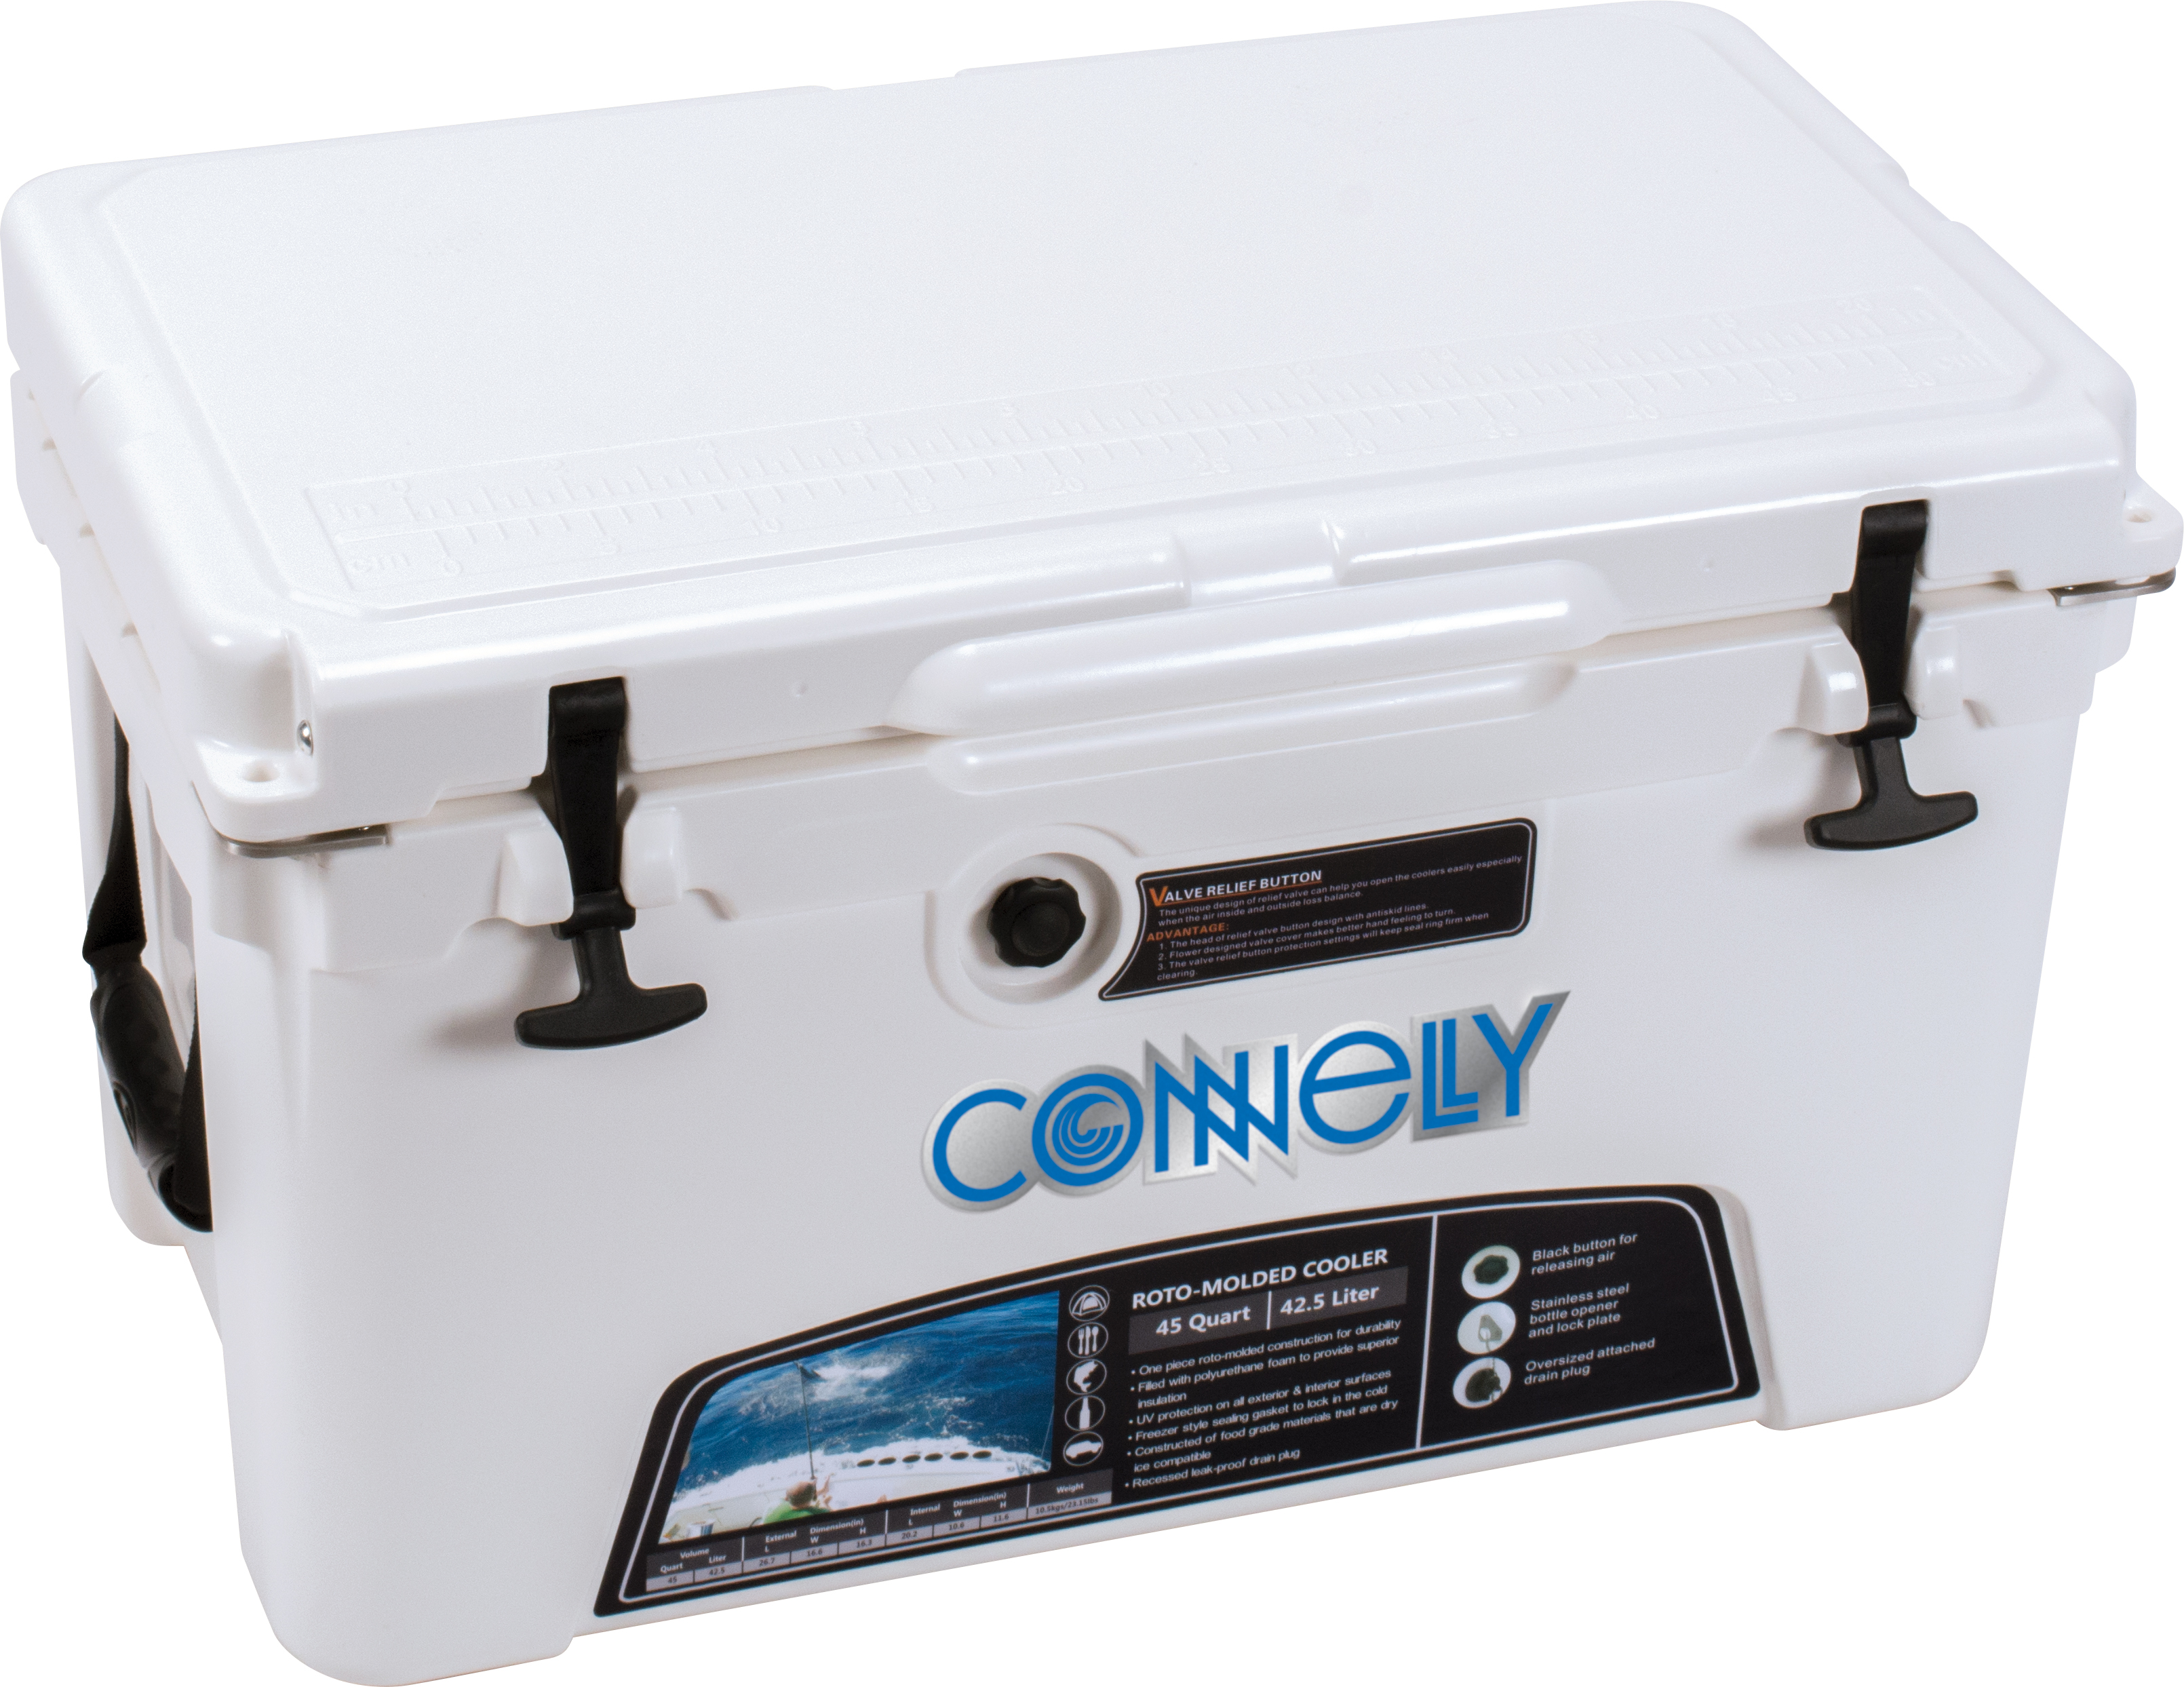 45 QUART COOLER CONNELLY 2018